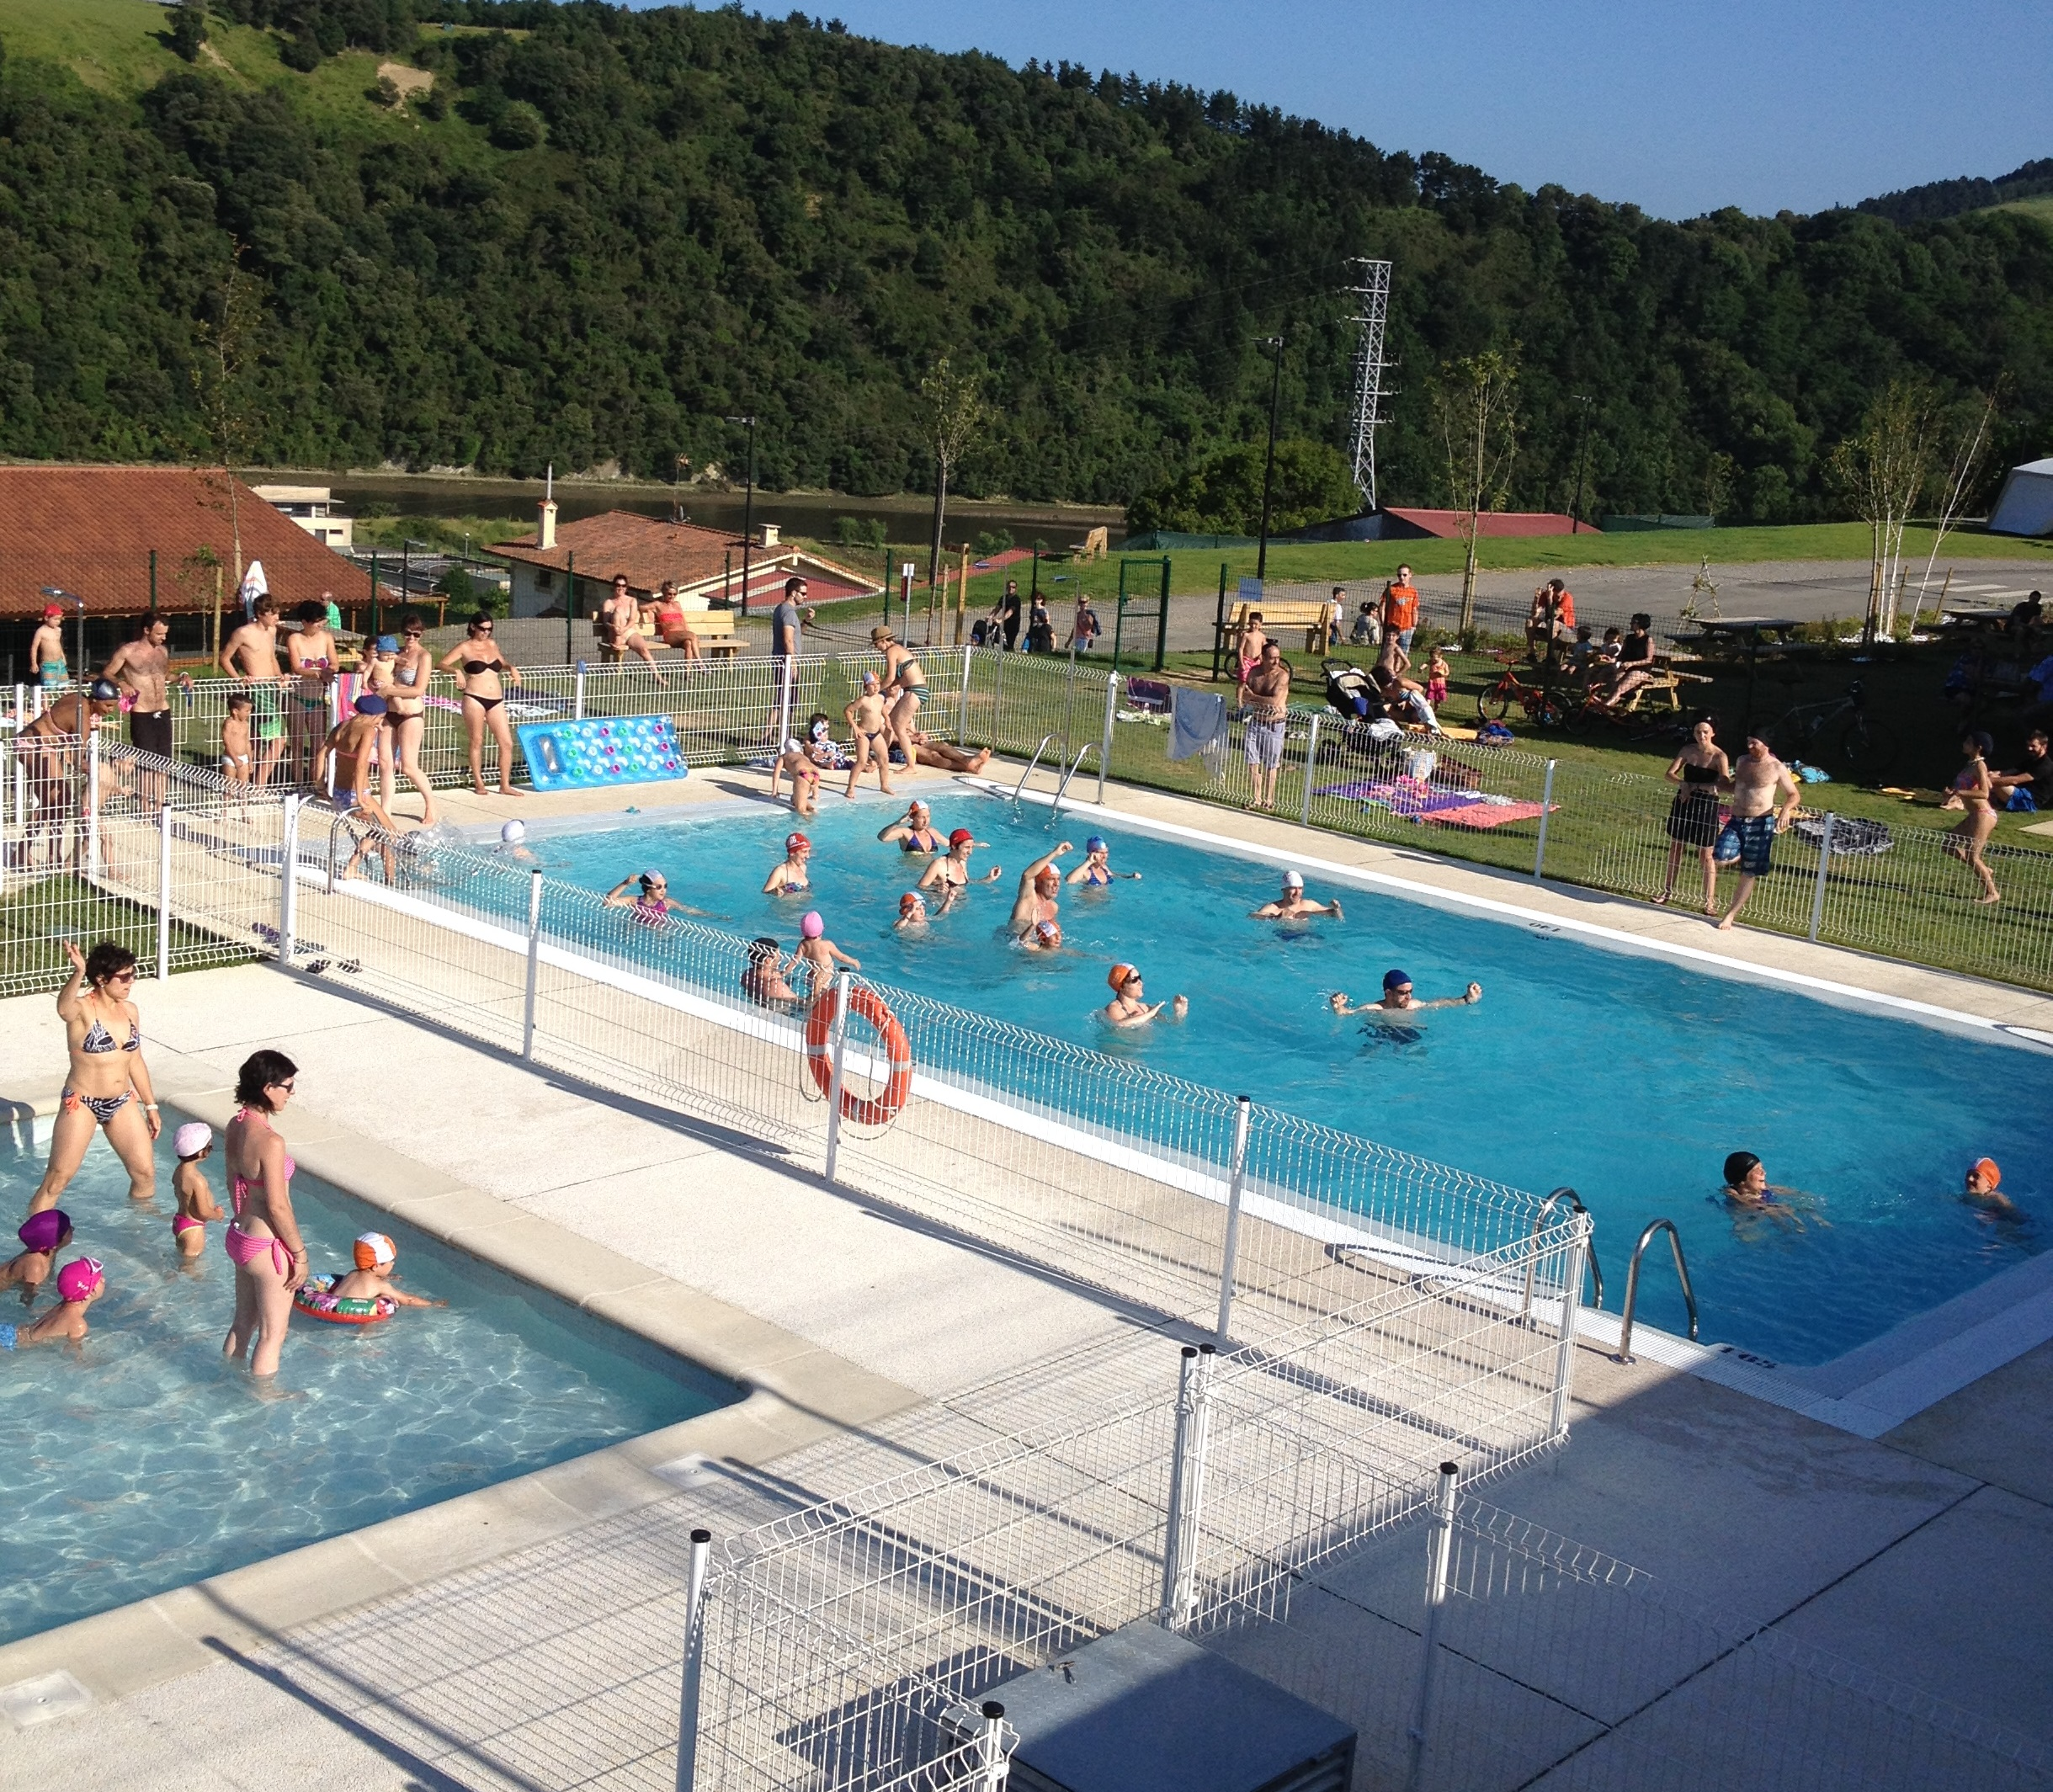 Camping espagne francophone camping espagne luxe